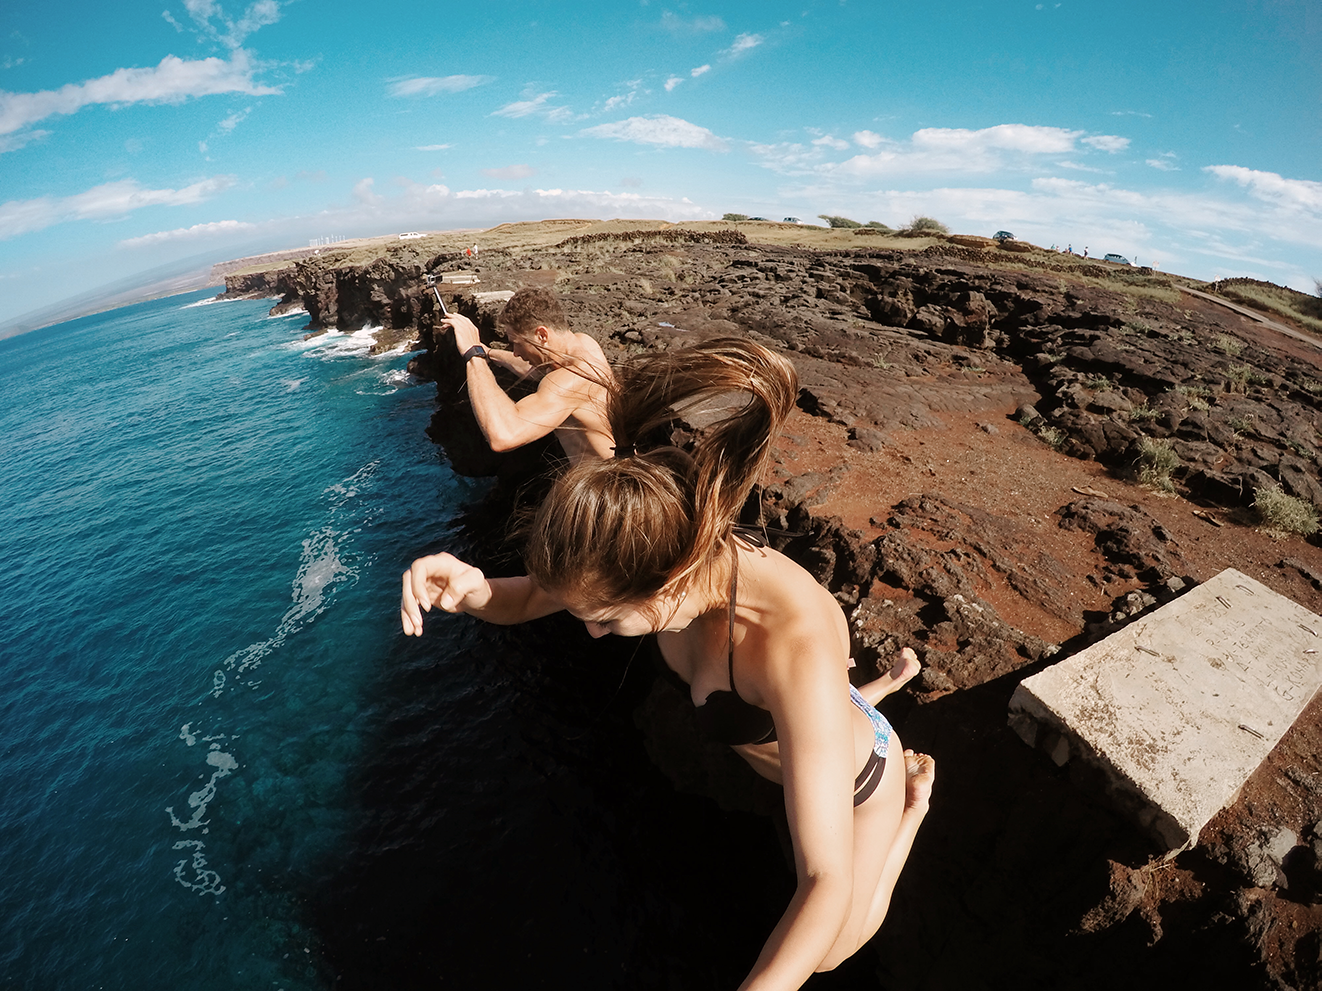 A couple jumping off cliff into water